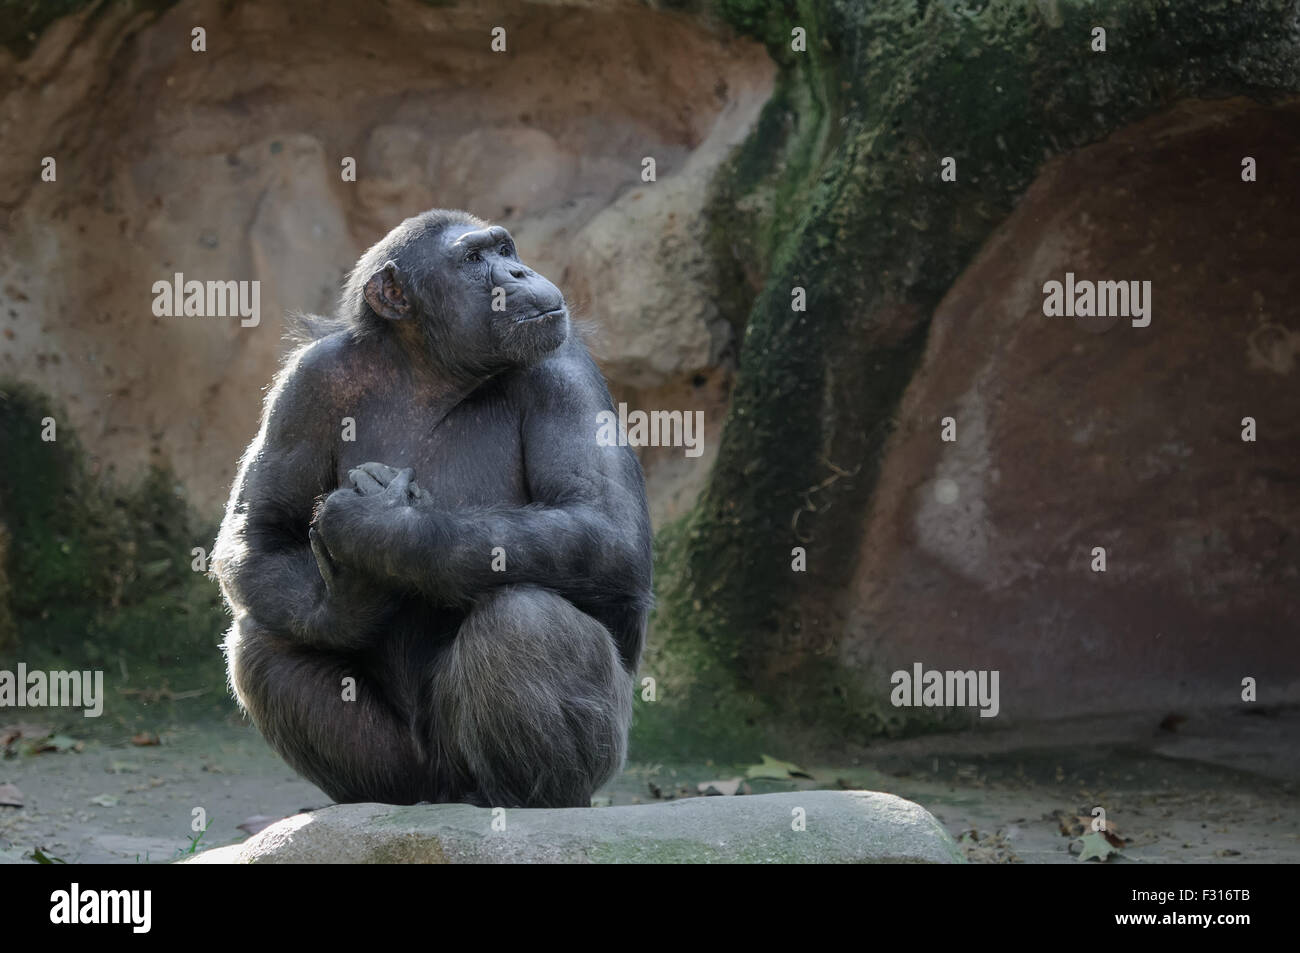 Chimpanzee sitting with proud and important look - Stock Image